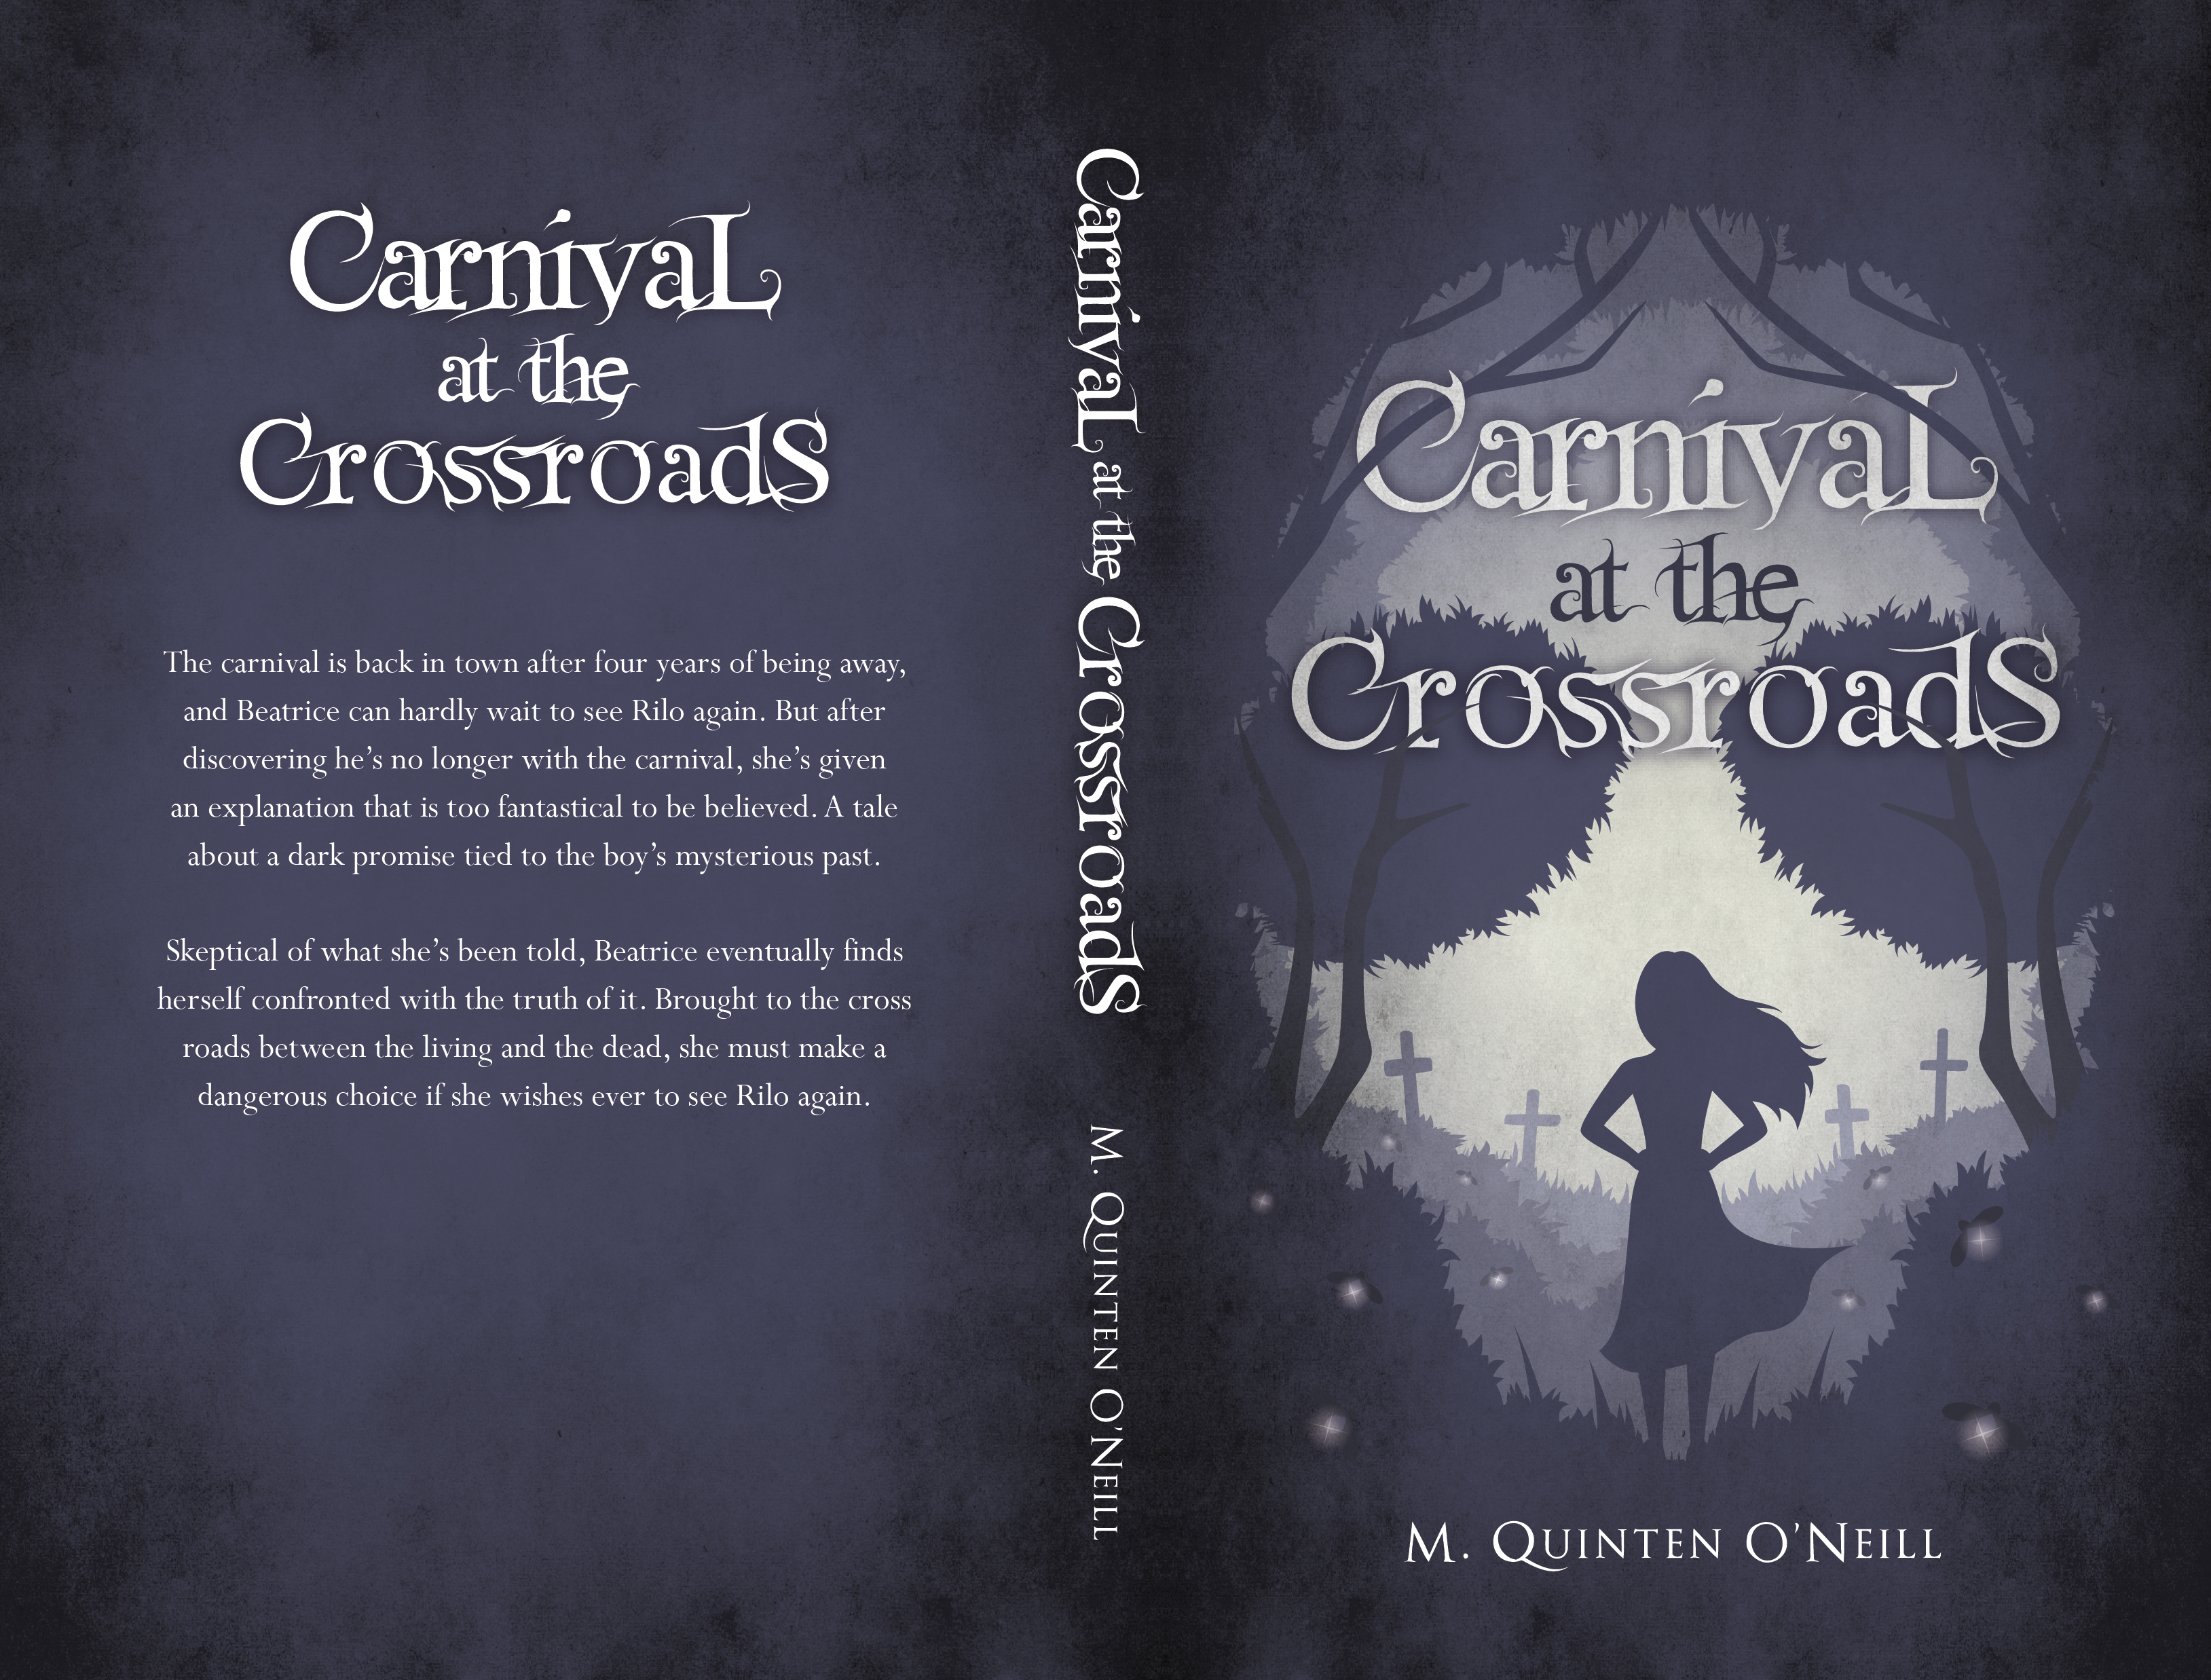 Carnival at the Crossroads